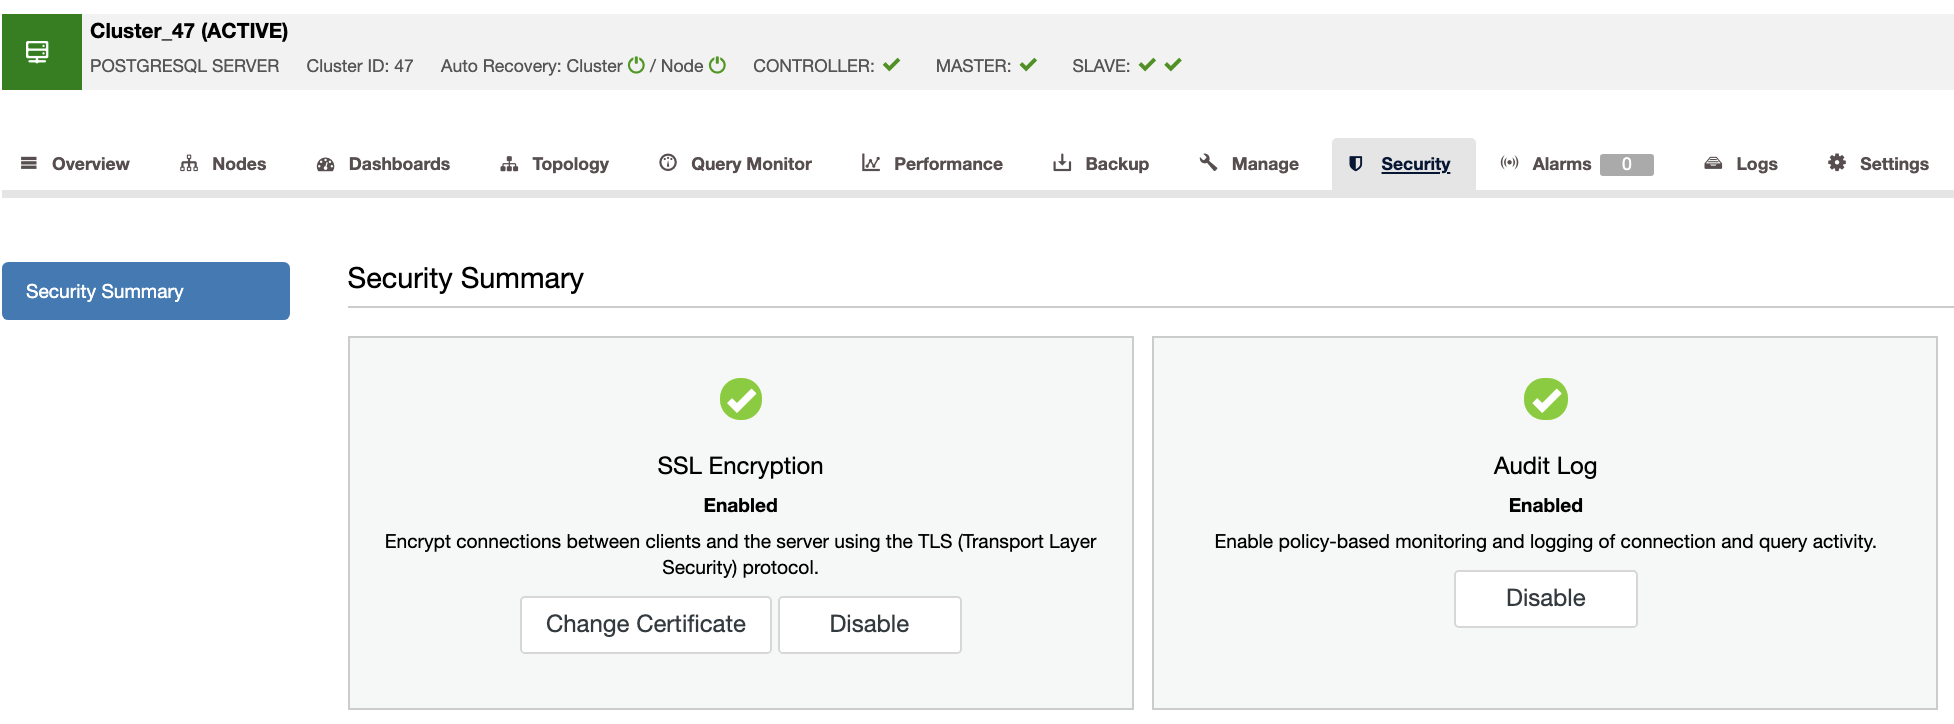 Automating Security Audits for PostgreSQL